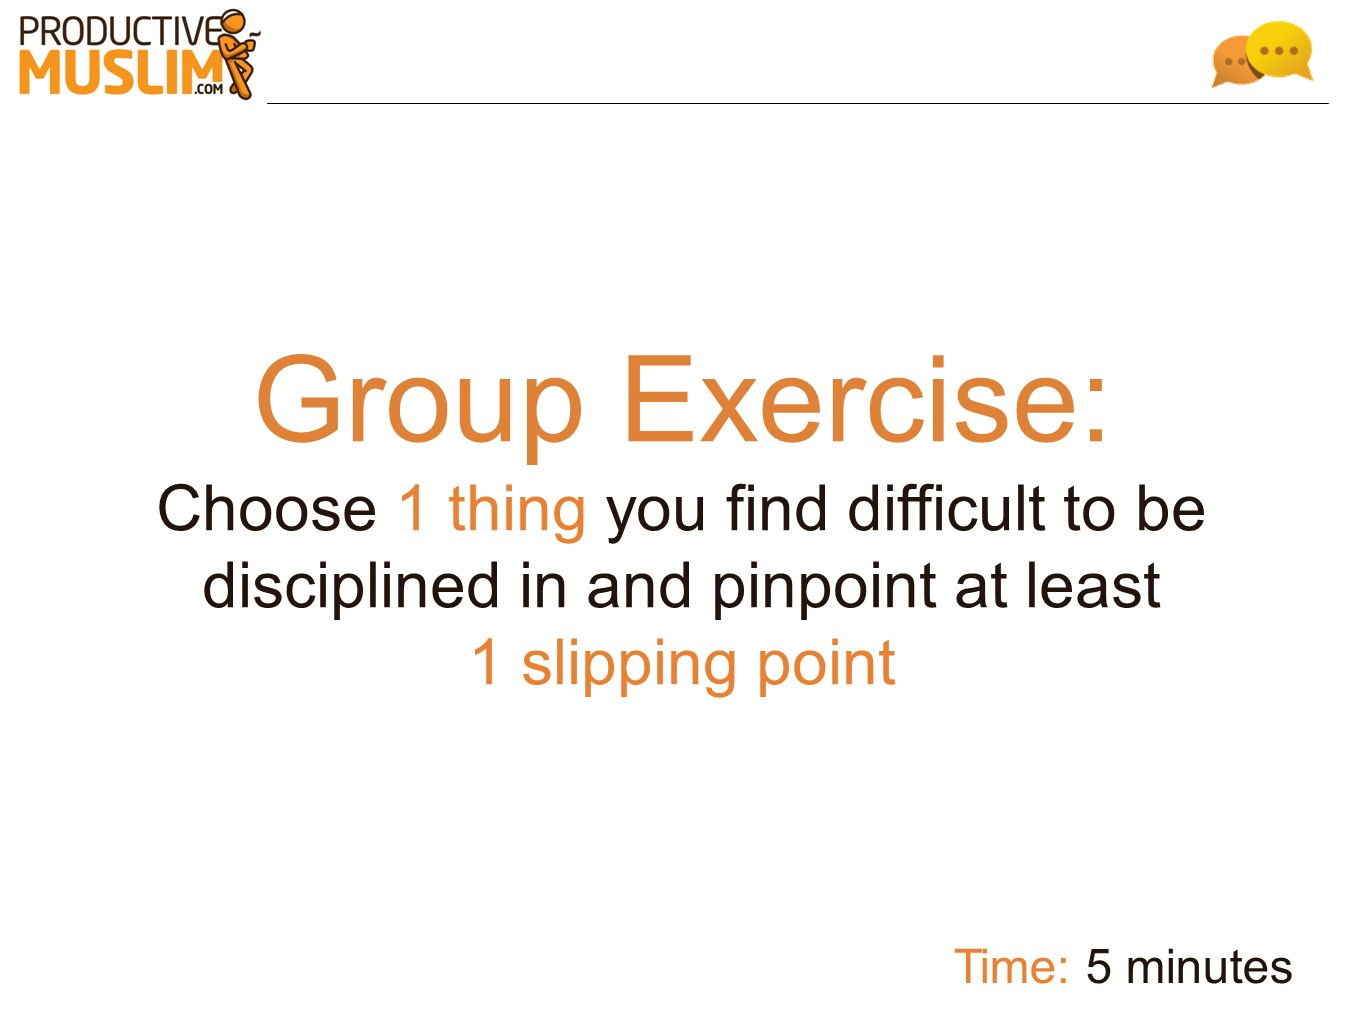 Group Exercise: Choose 1 thing you find difficult to be disciplined in and pinpoint at least 1 slipping point Time: 5 minutes